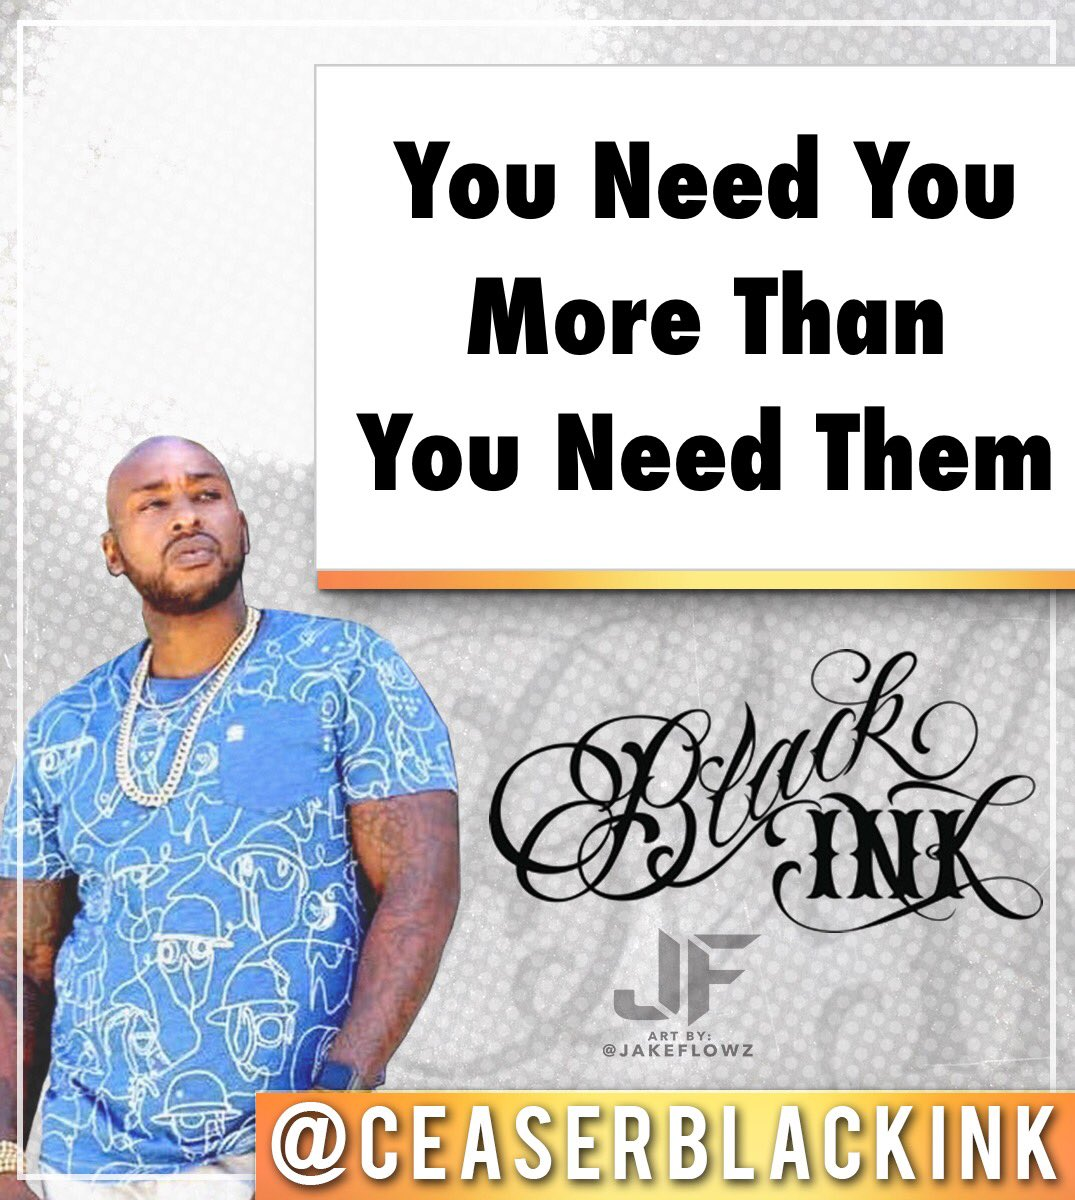 Always remember that !! #factsoflife #BlackInkCrew #CeaserBlackInk htt...